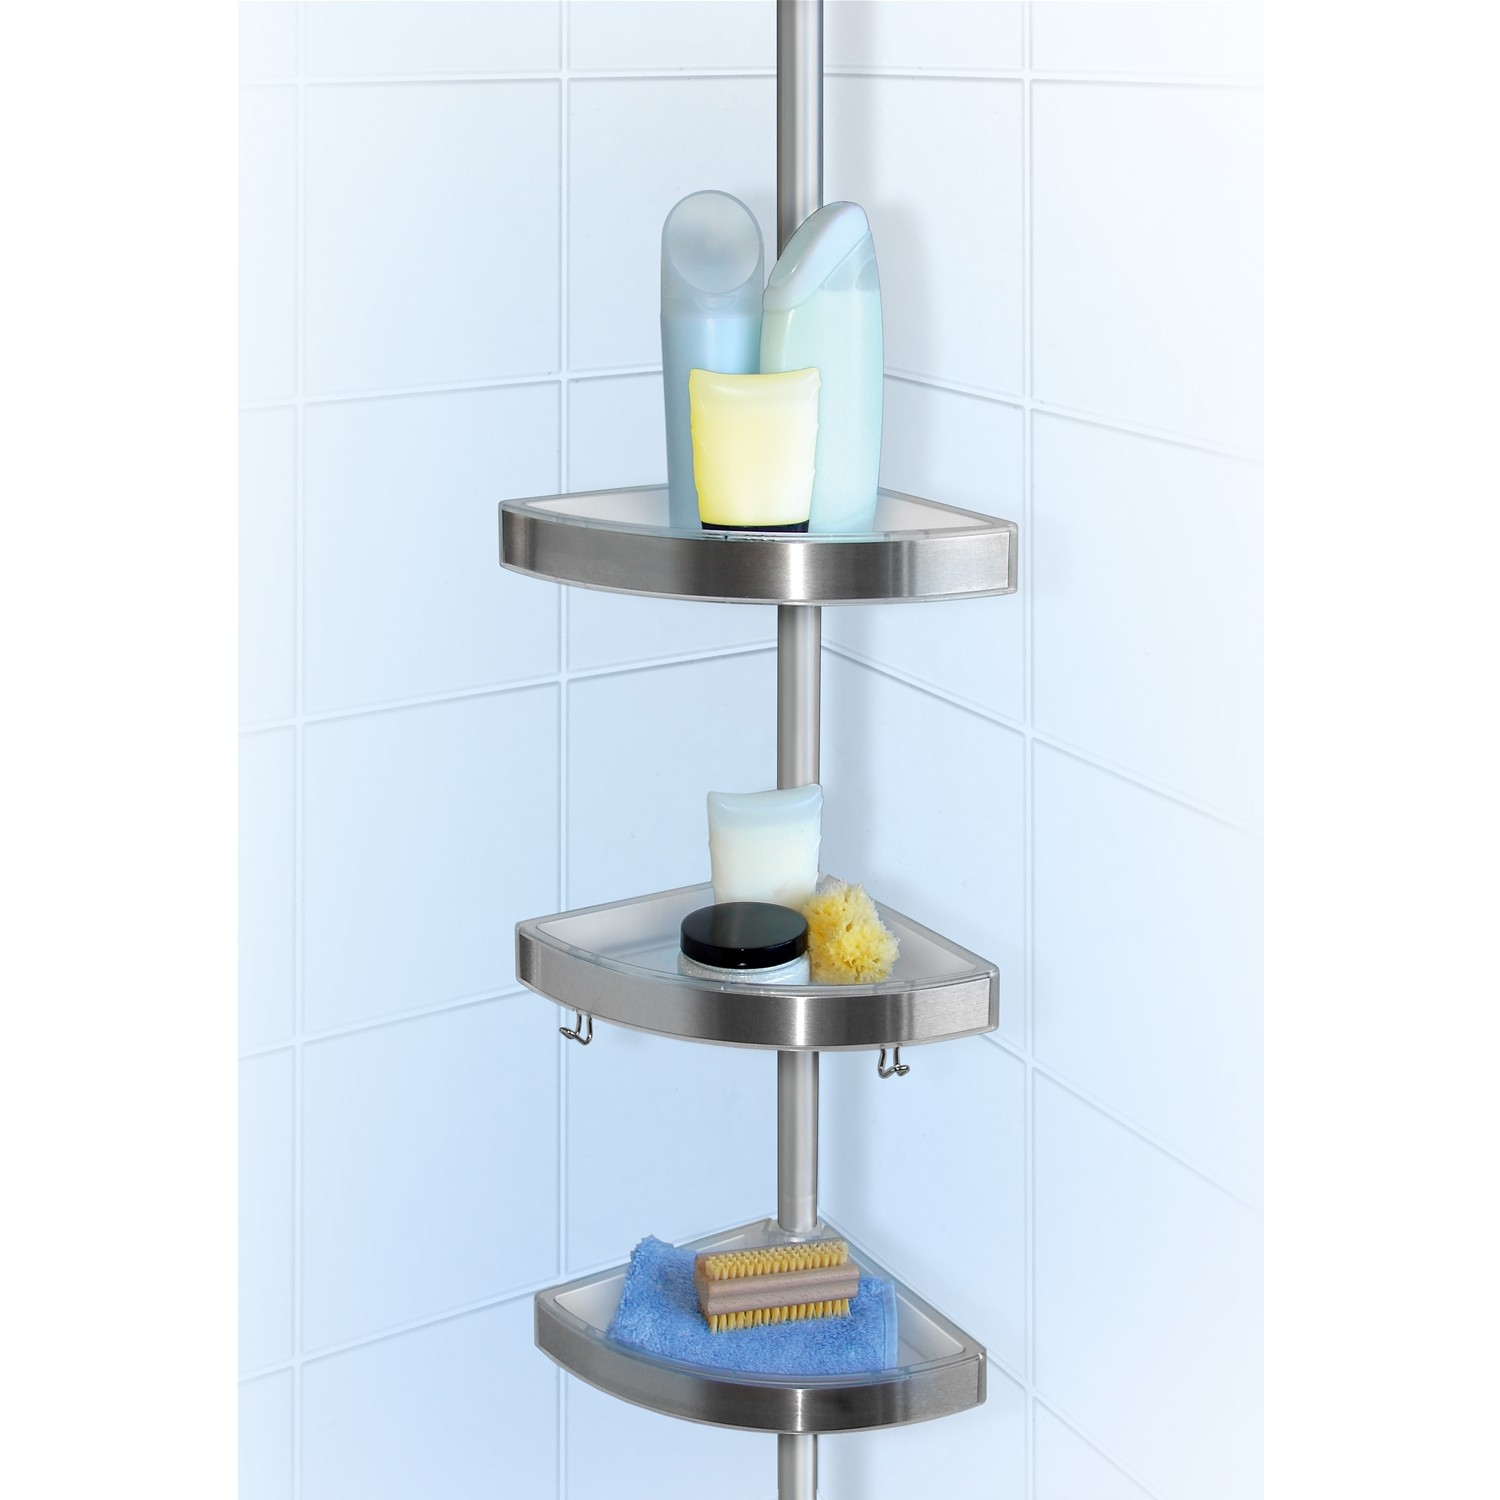 Tension shower caddy bathroom caddy shower extendable for Bathroom utensils